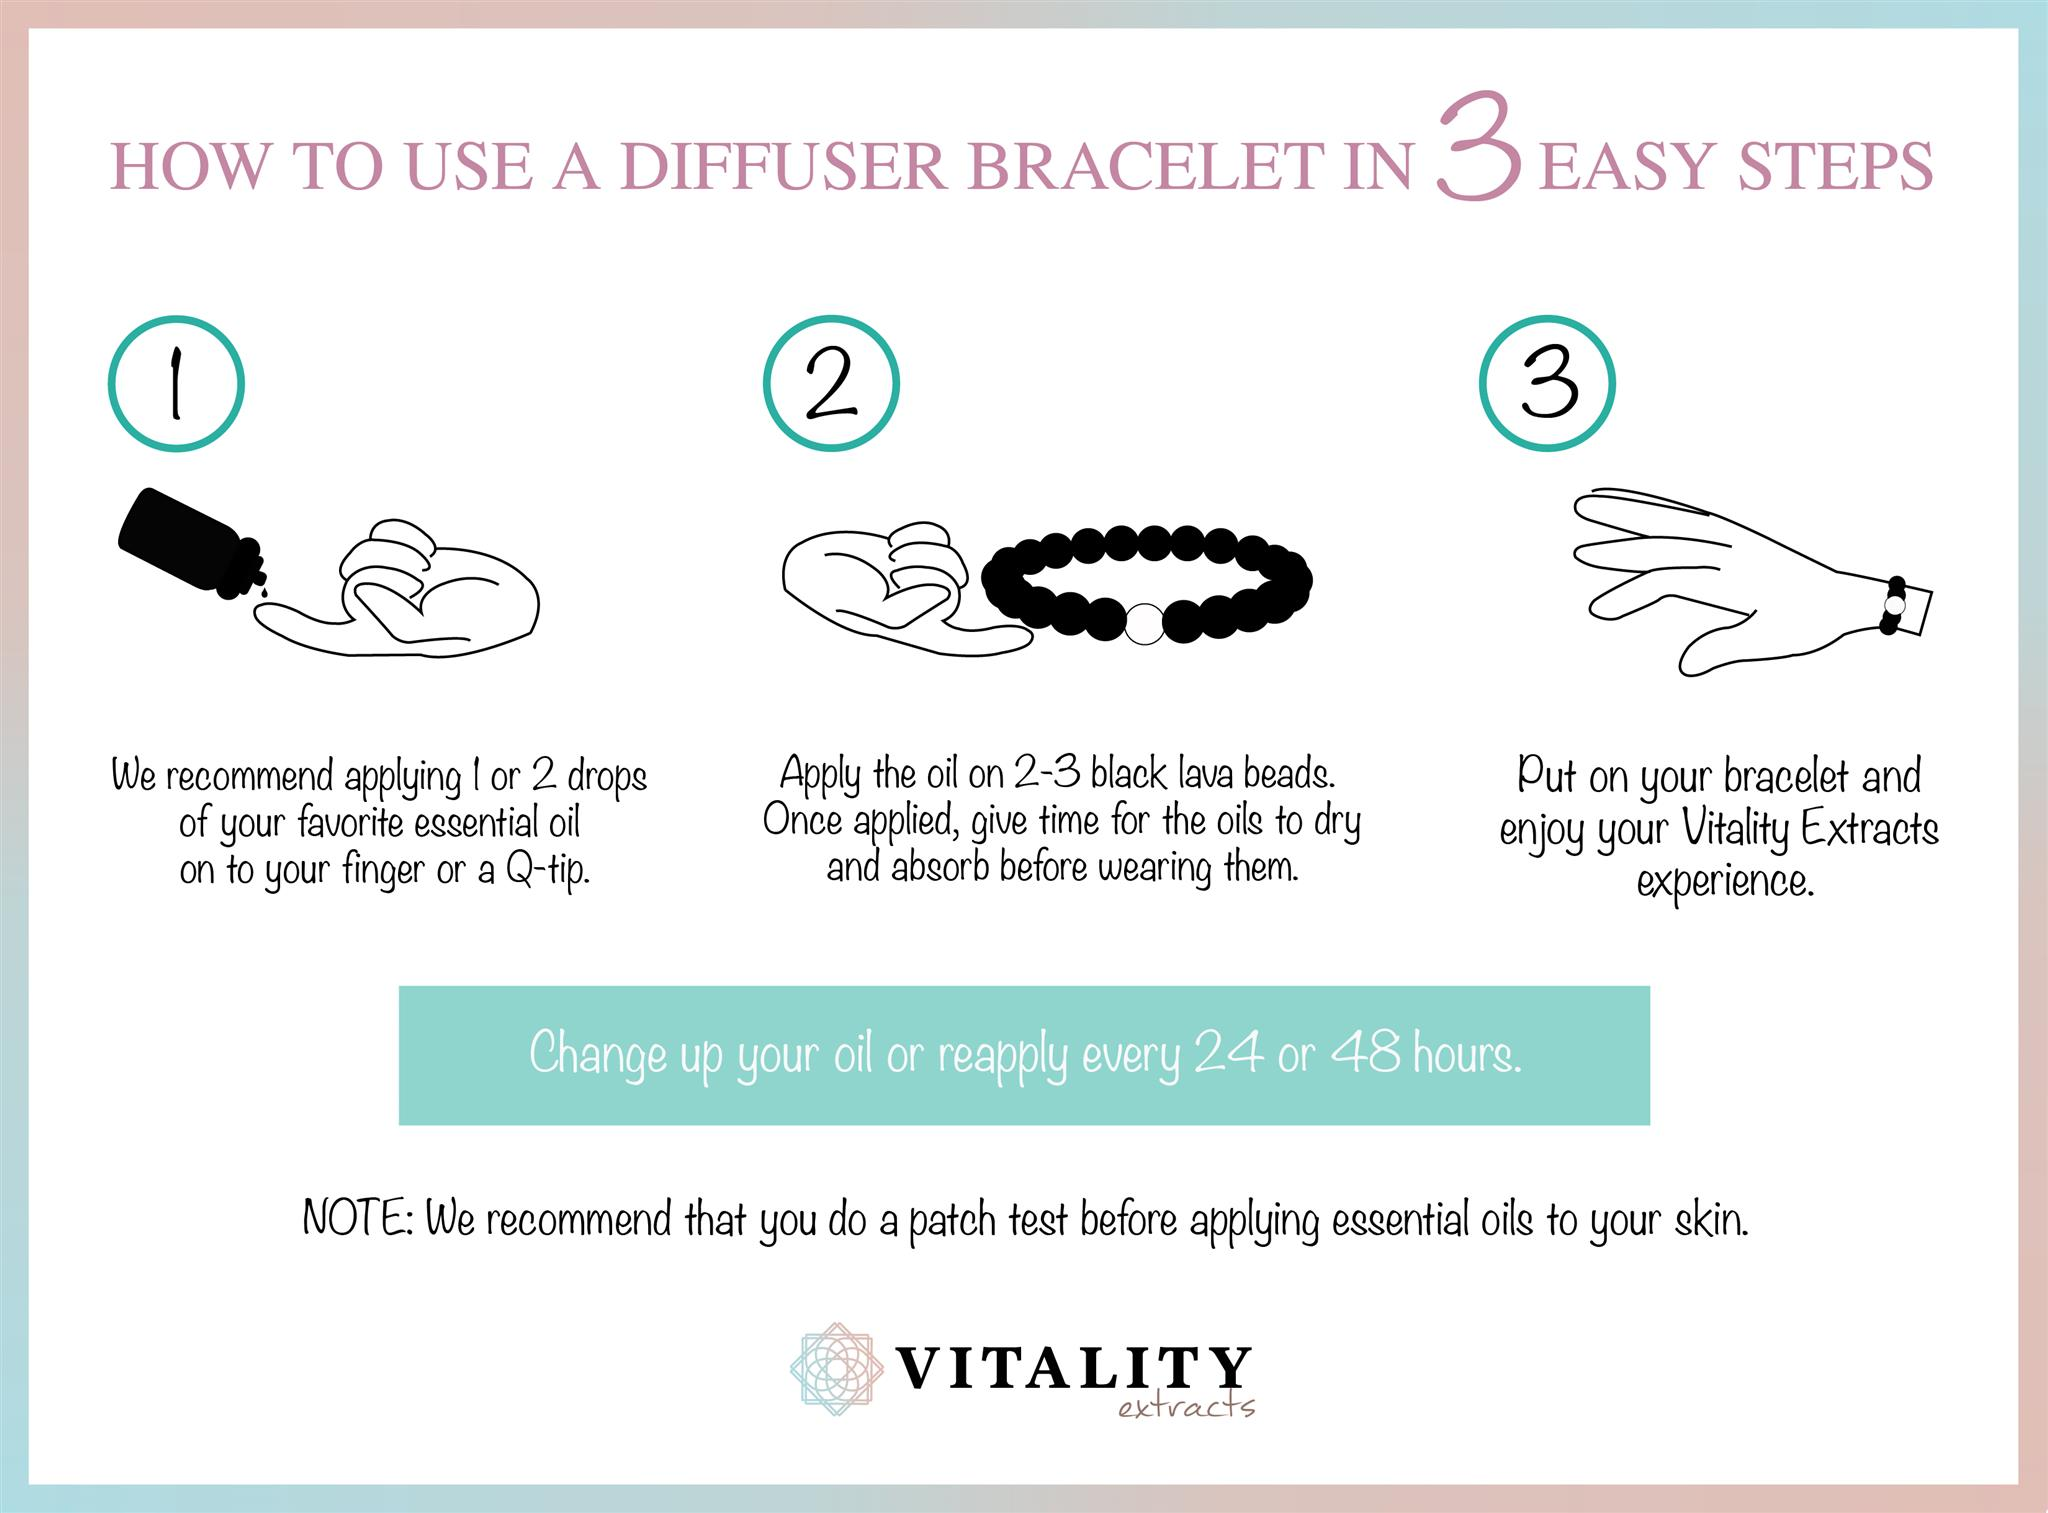 Steps_to_use_a_diffuser_bracelet-01.jpg